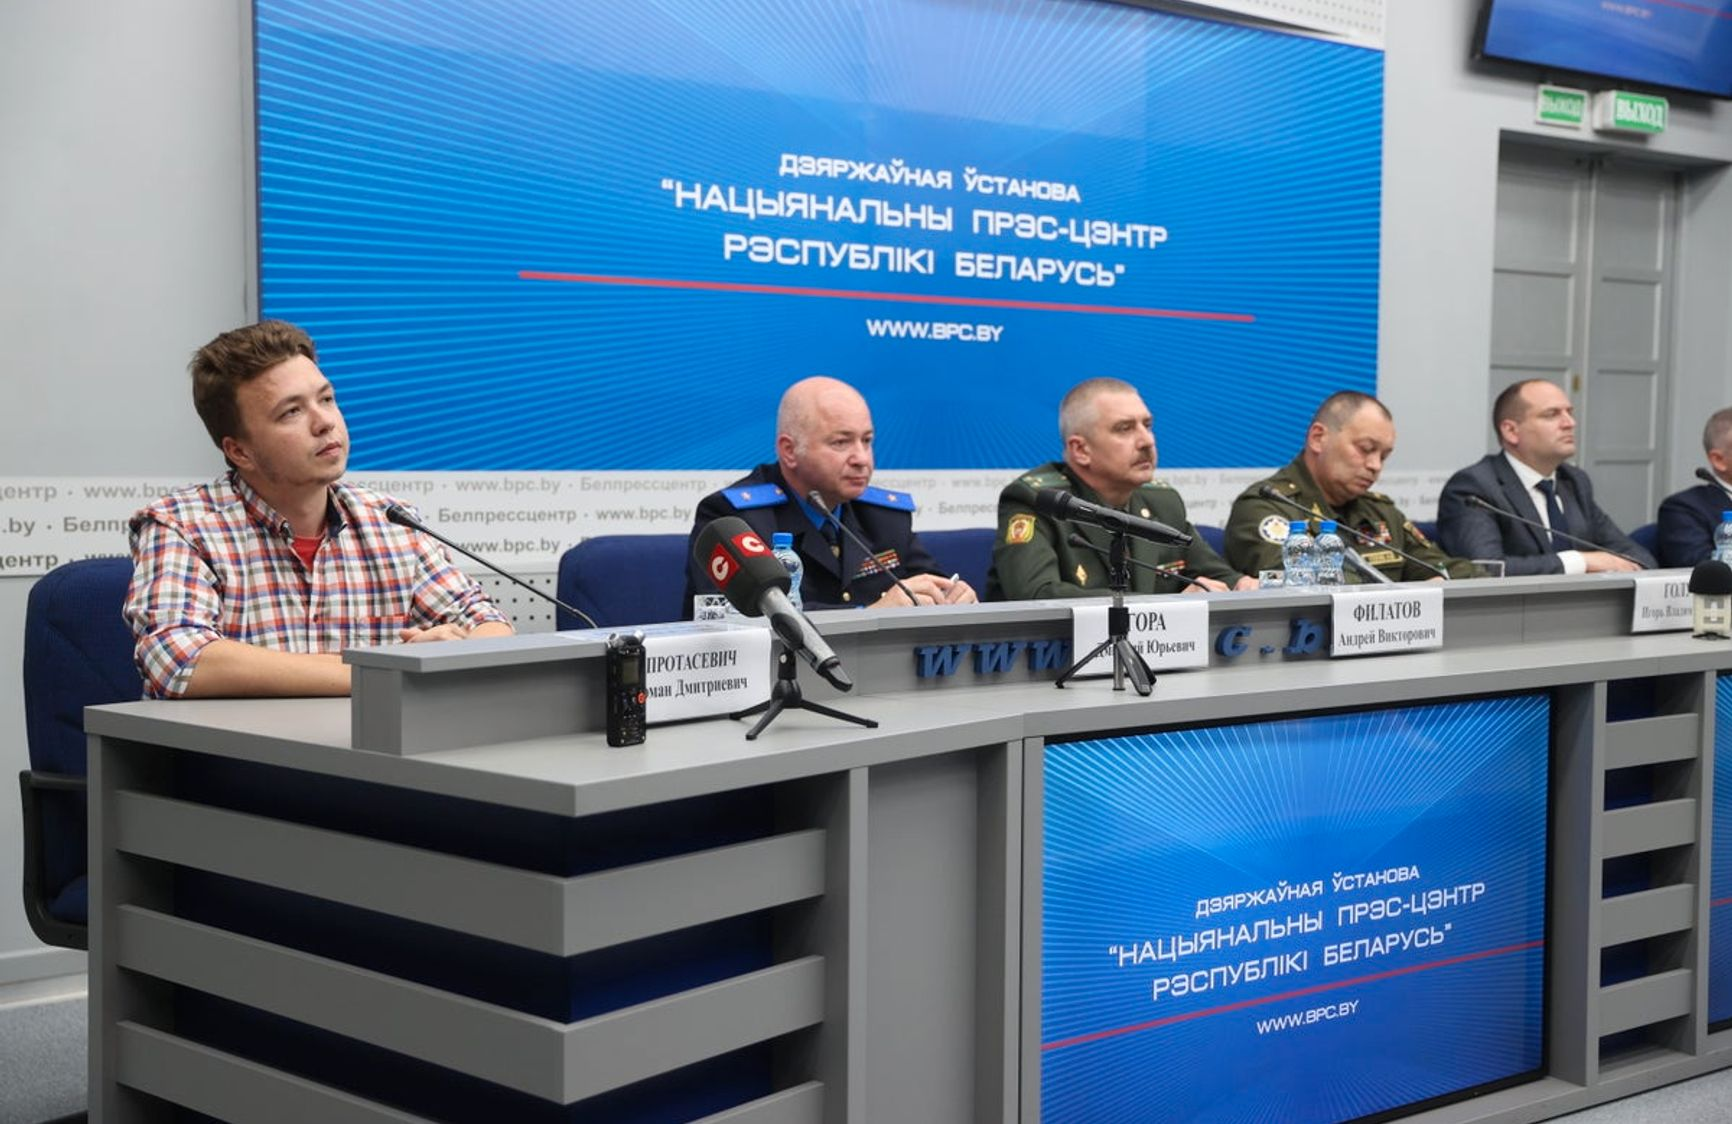 'Hostage' Protasevich tells reporters: 'Nobody beat me' at the governmental press-conference